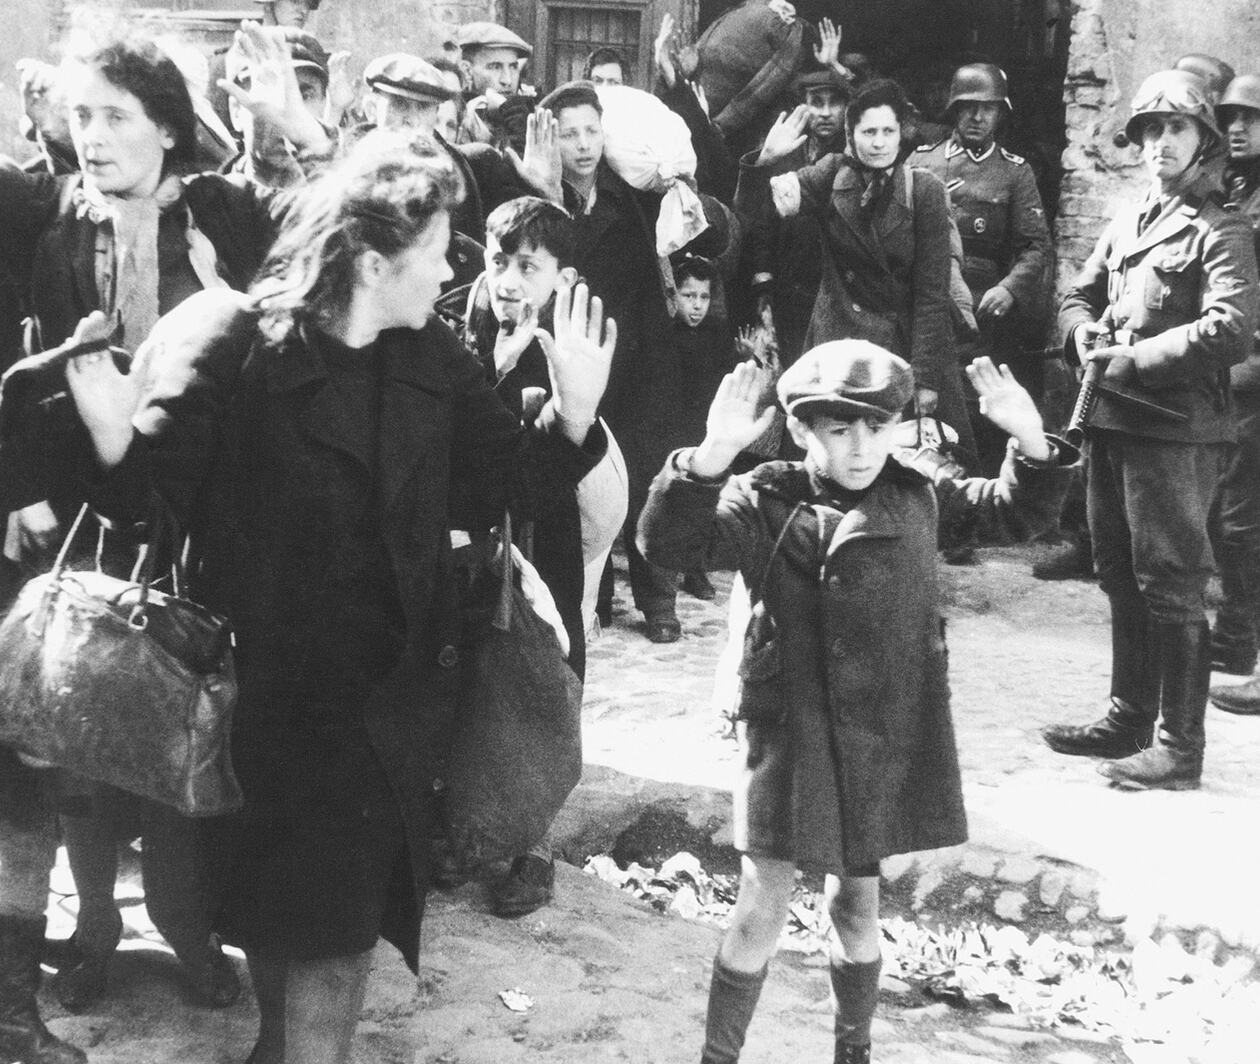 Photographing the Holocaust